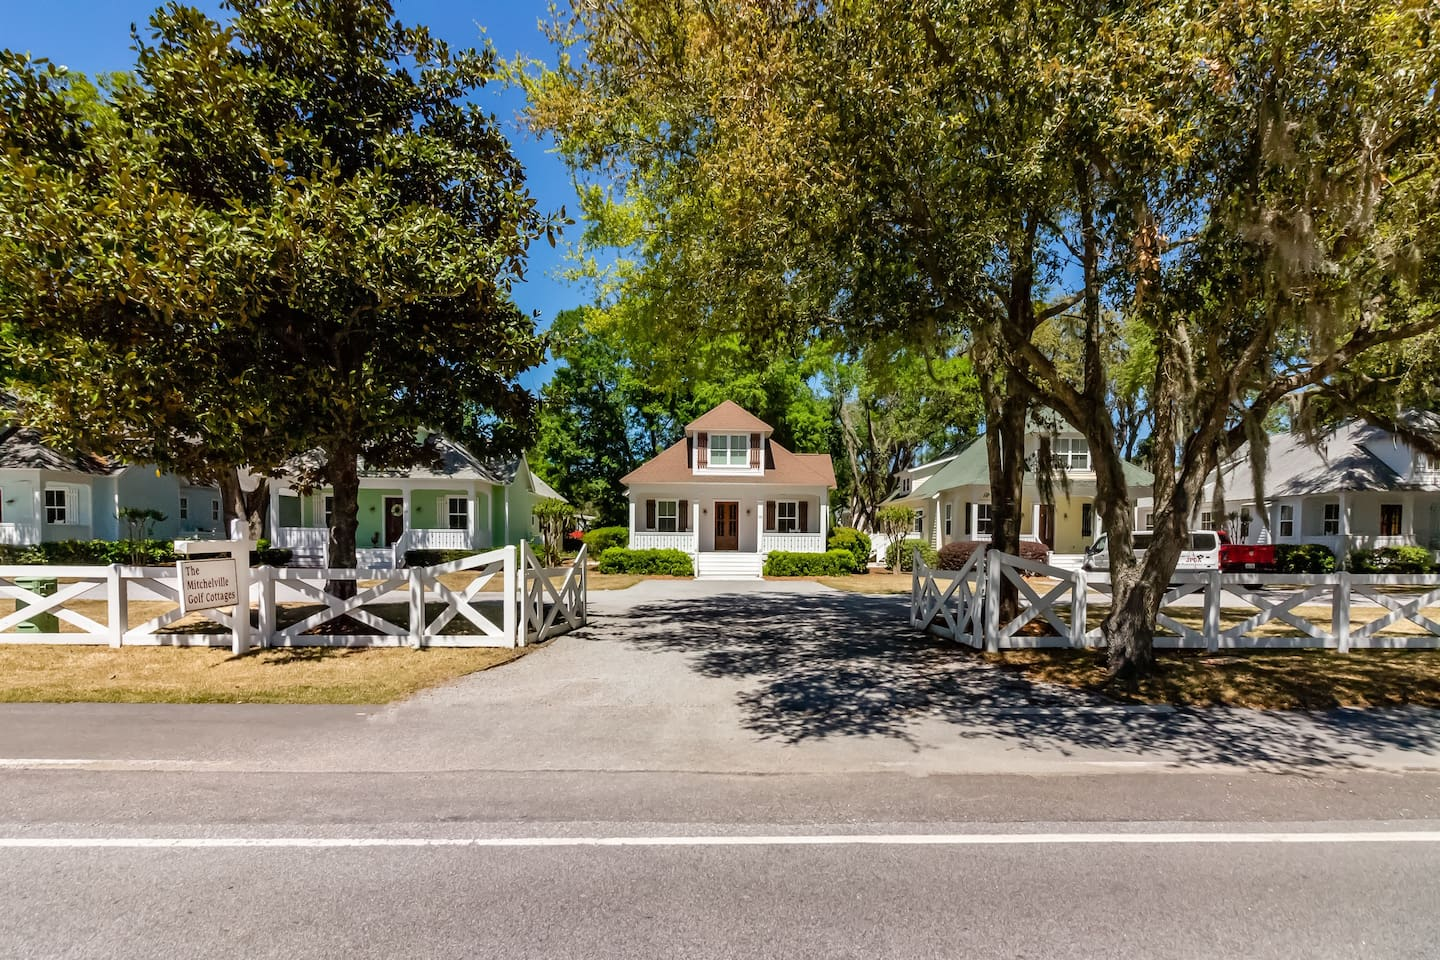 The Mitchellville Golf Cottages, 4 Bedroom, 4 1/2 bath cottages walking distance to the beach.